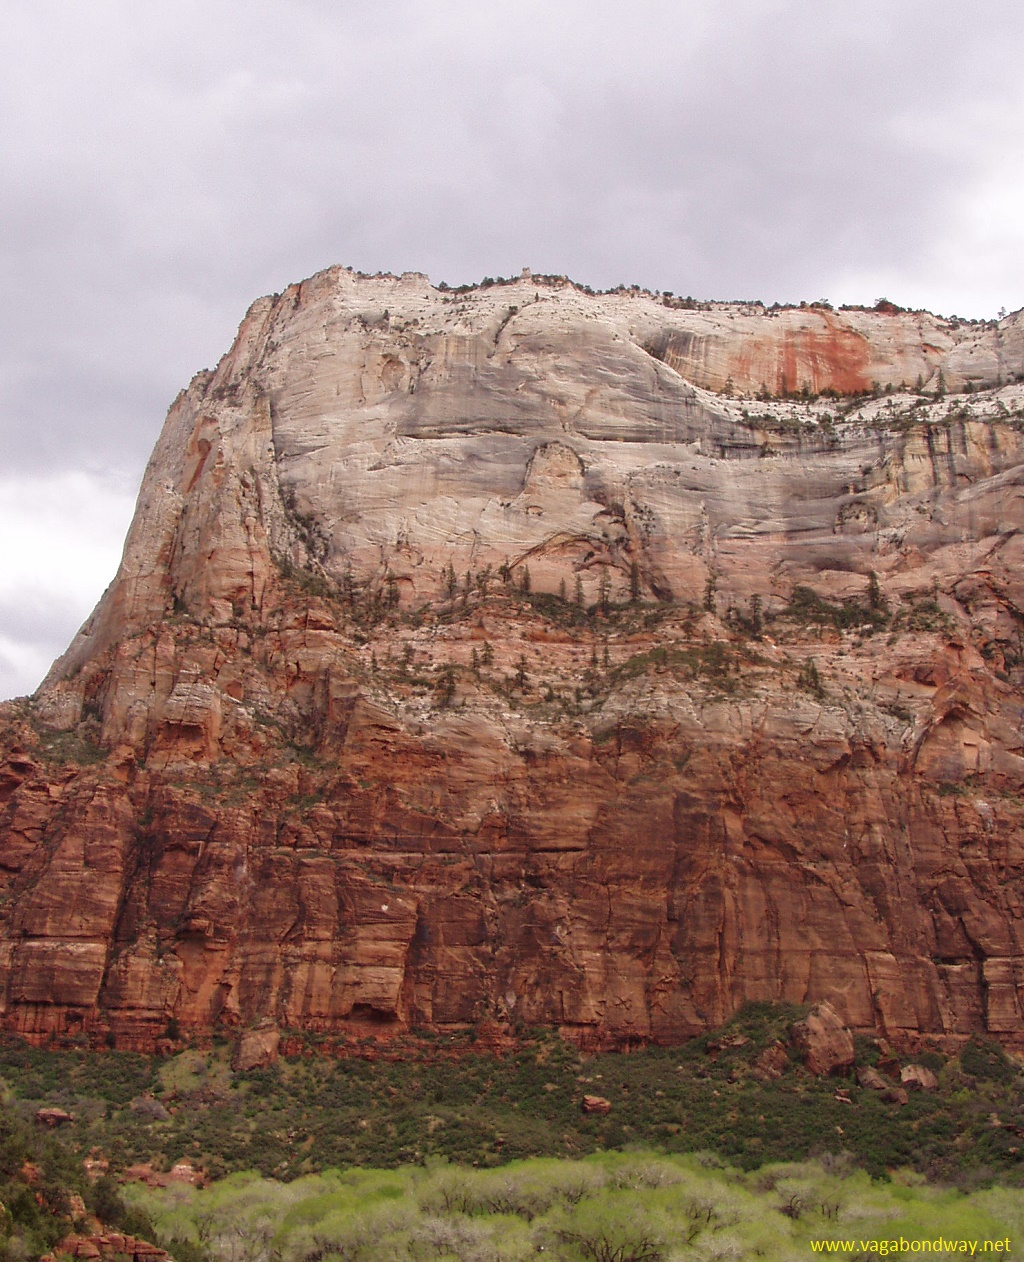 Landscape in Zion National Park, Utah